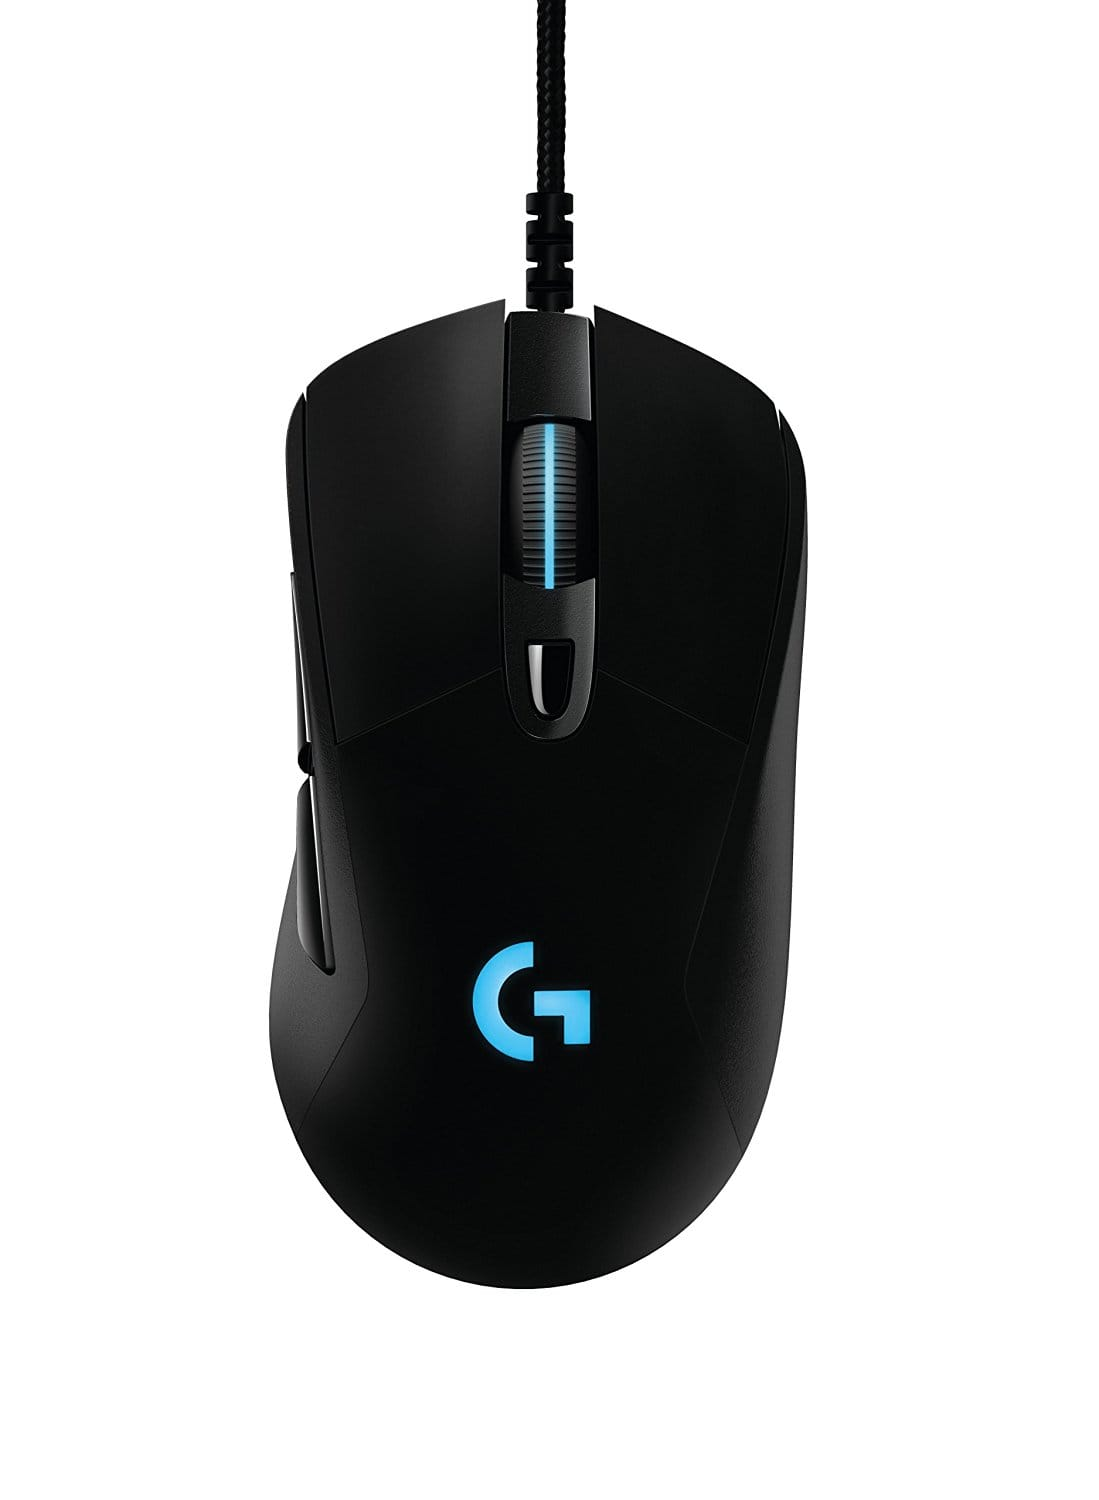 Logitech G403 Gaming Mouse - Wired $34.98